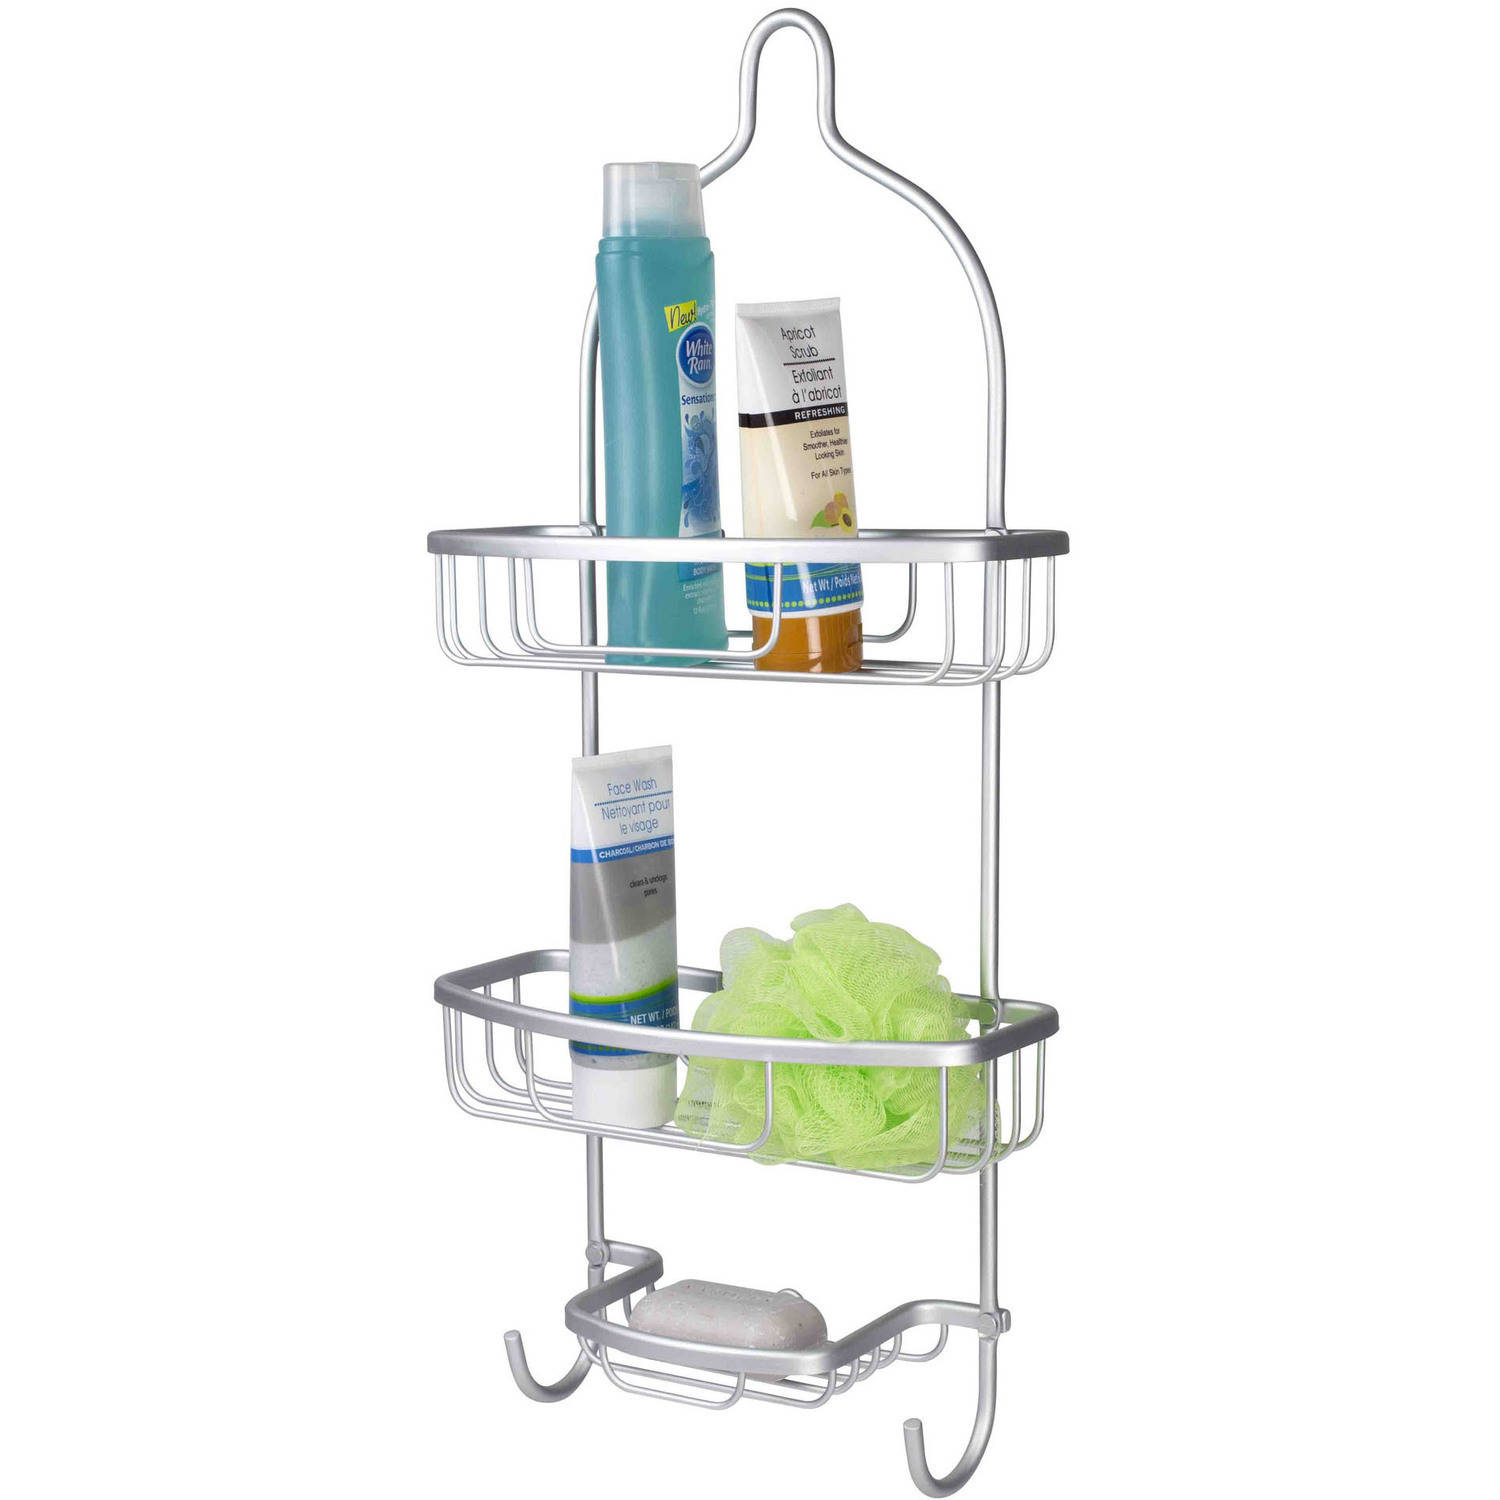 Home Basics Aluminum Shower Caddy by Generic